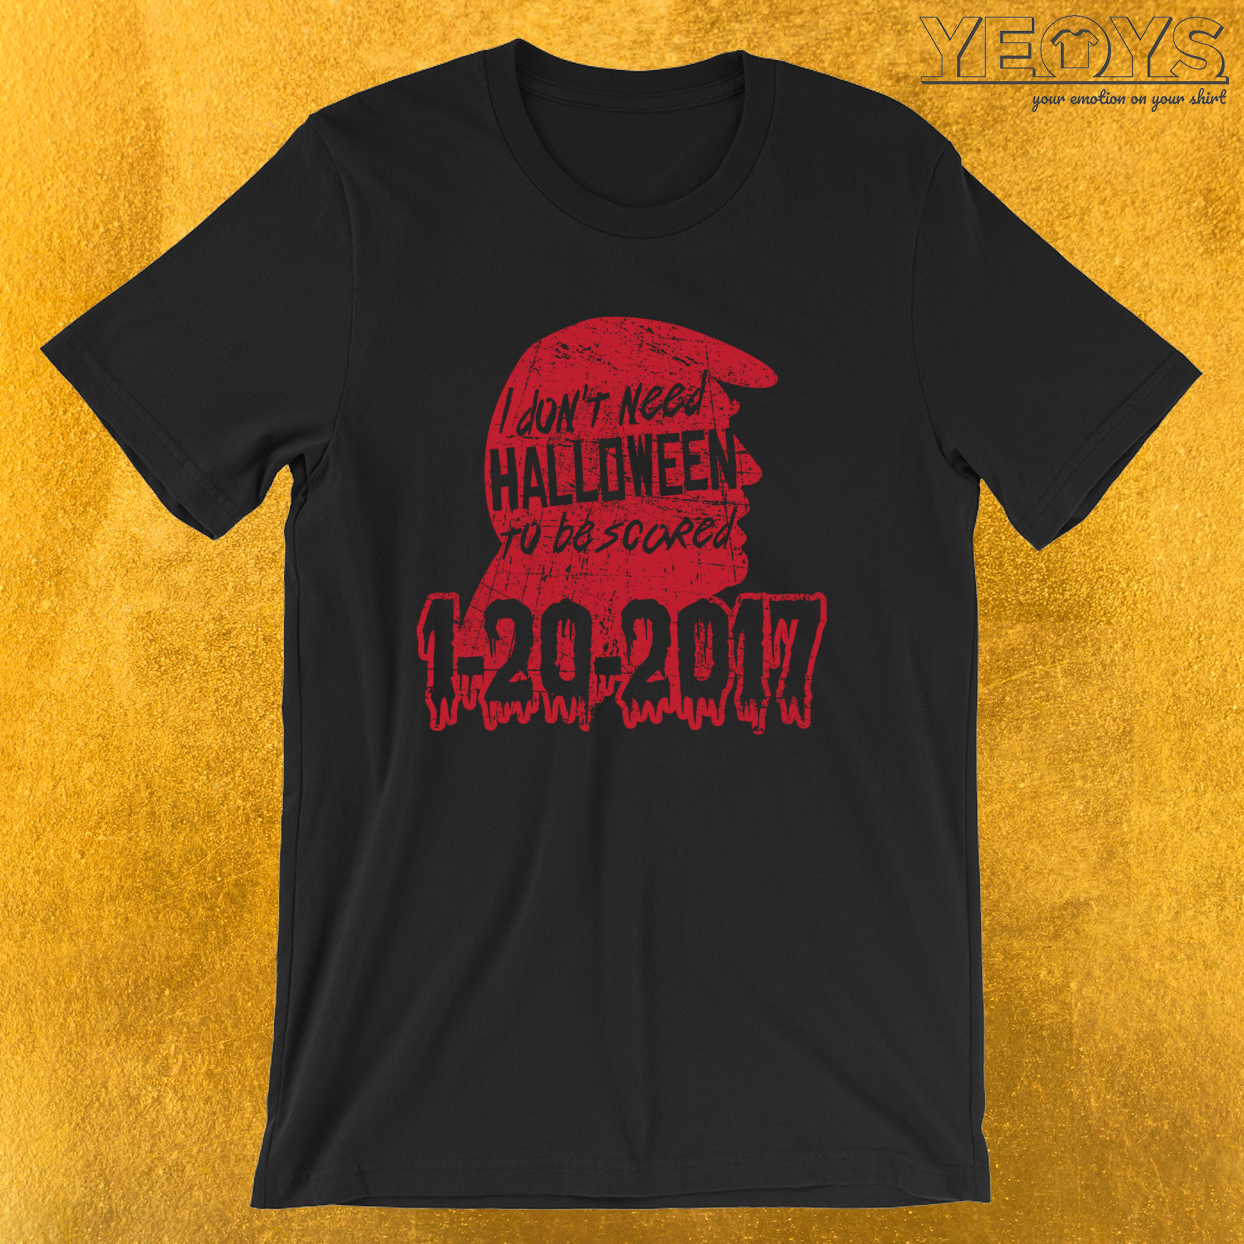 1-20-2017 I Don't Need Halloween To Be Scared – Funny Horror Movie Tee